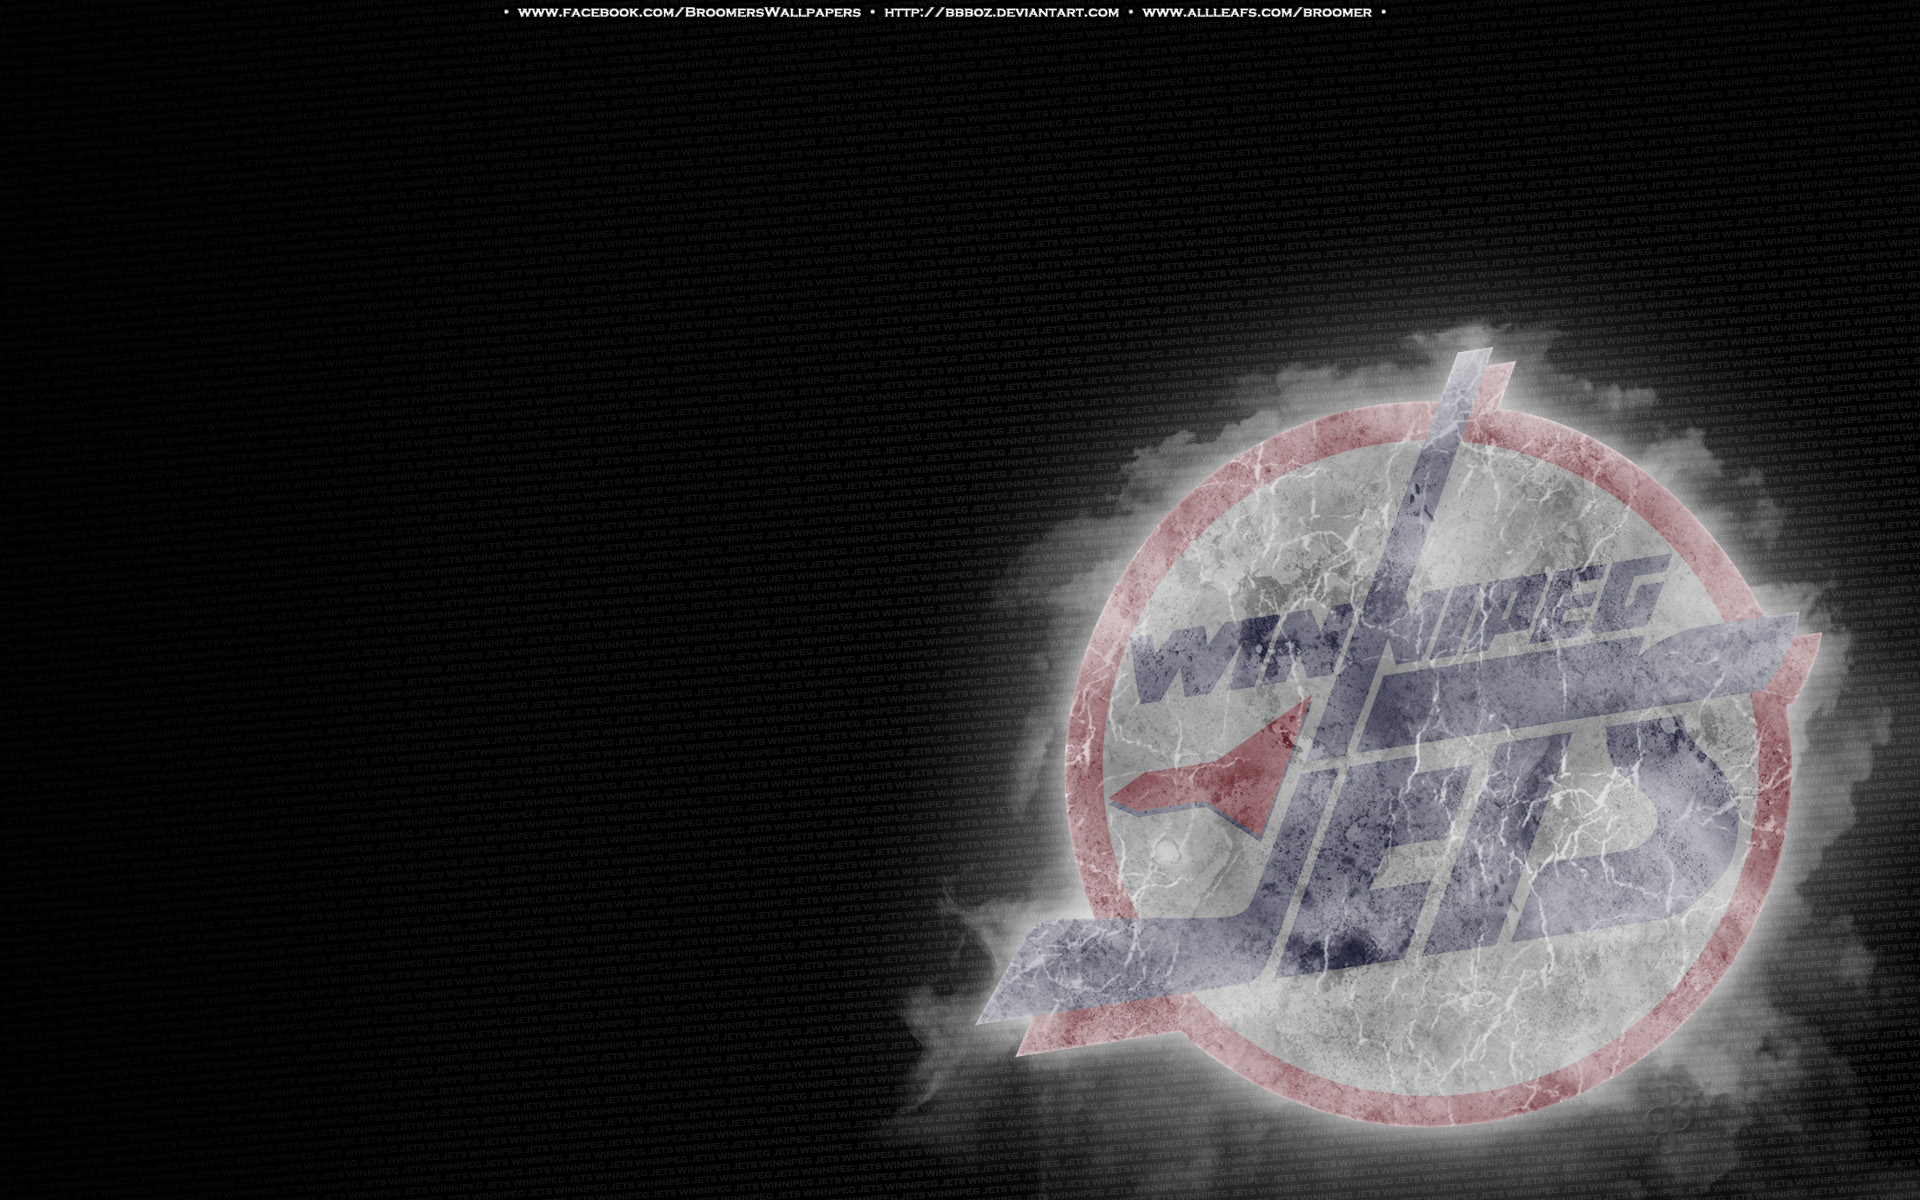 winnipeg jets retro ice by bbboz fan art wallpaper other 2011 2015 1920x1200